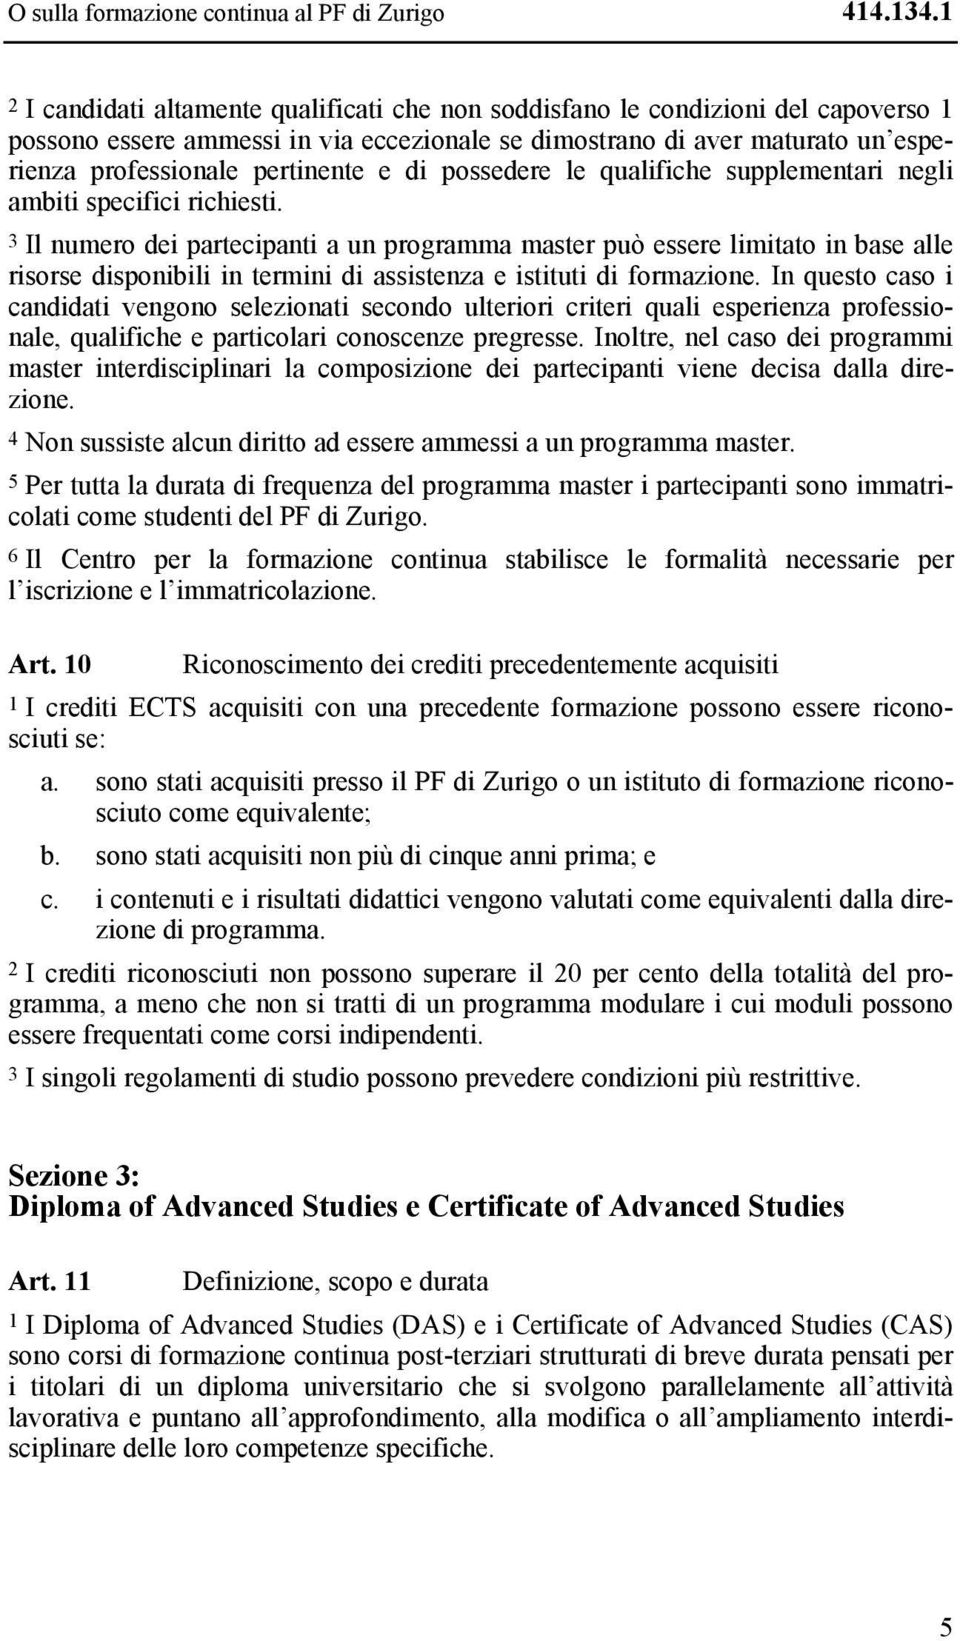 e di possedere le qualifiche supplementari negli ambiti specifici richiesti.